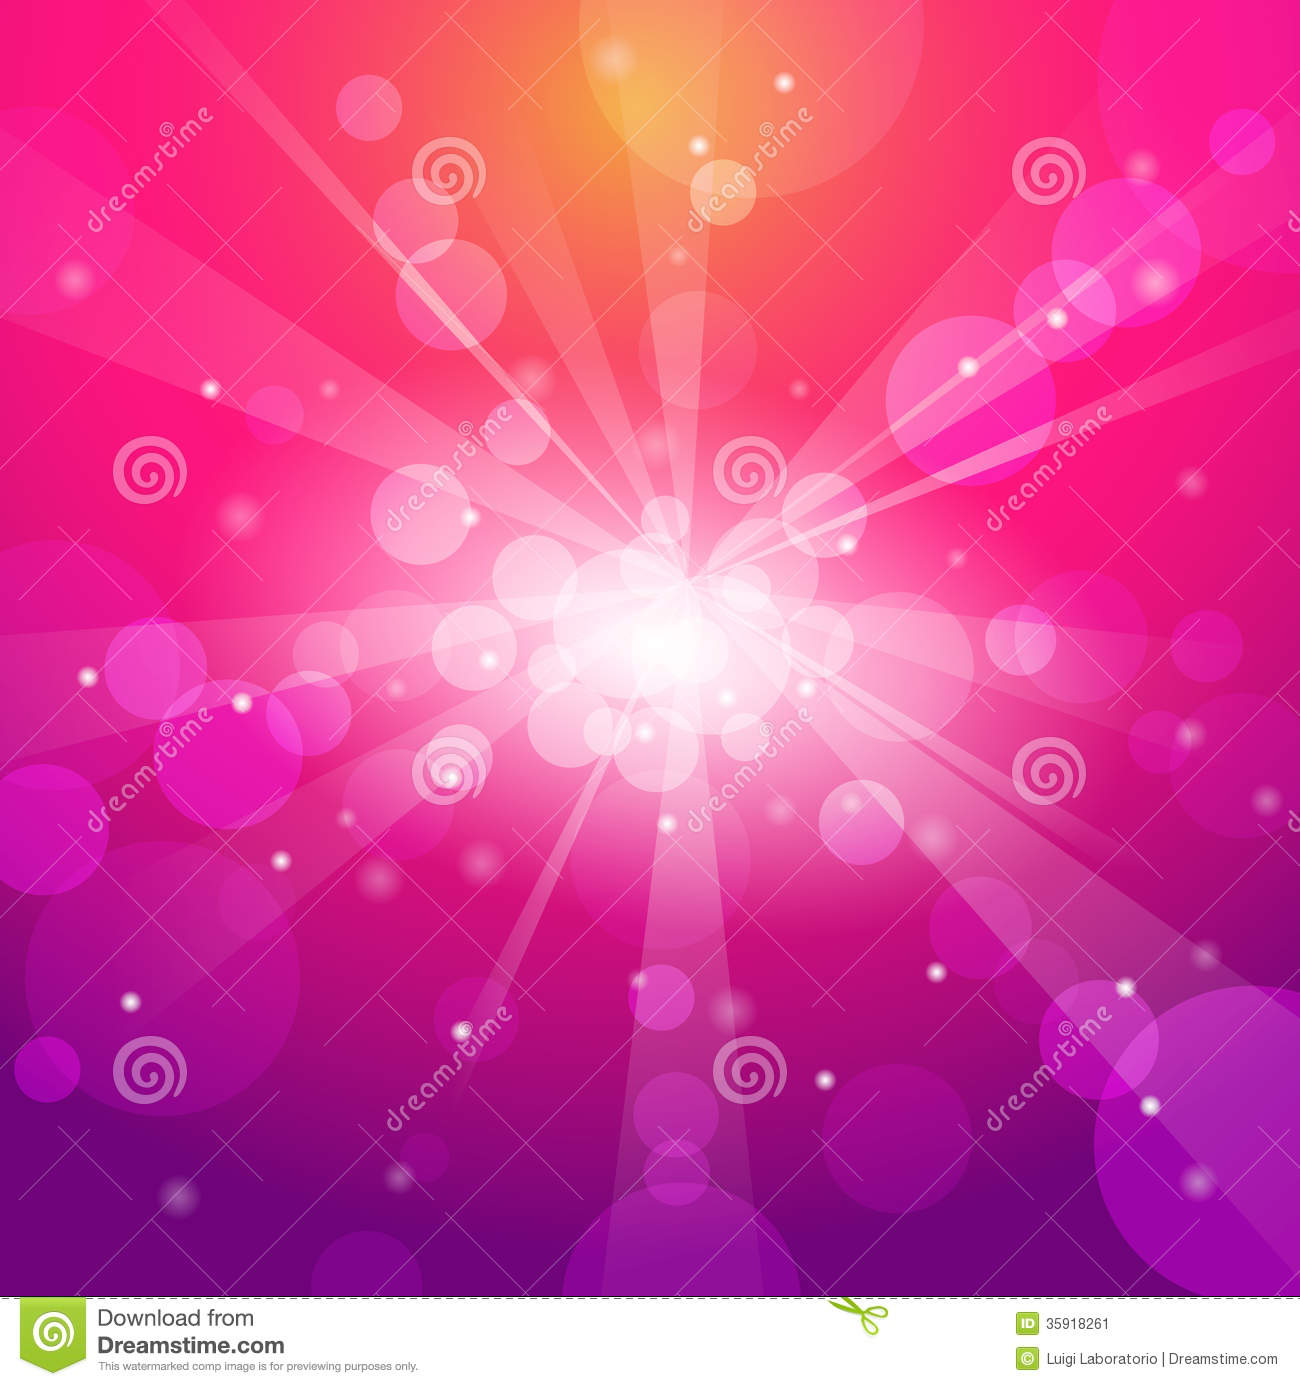 Pink and purple background designs stock image abstract pink image